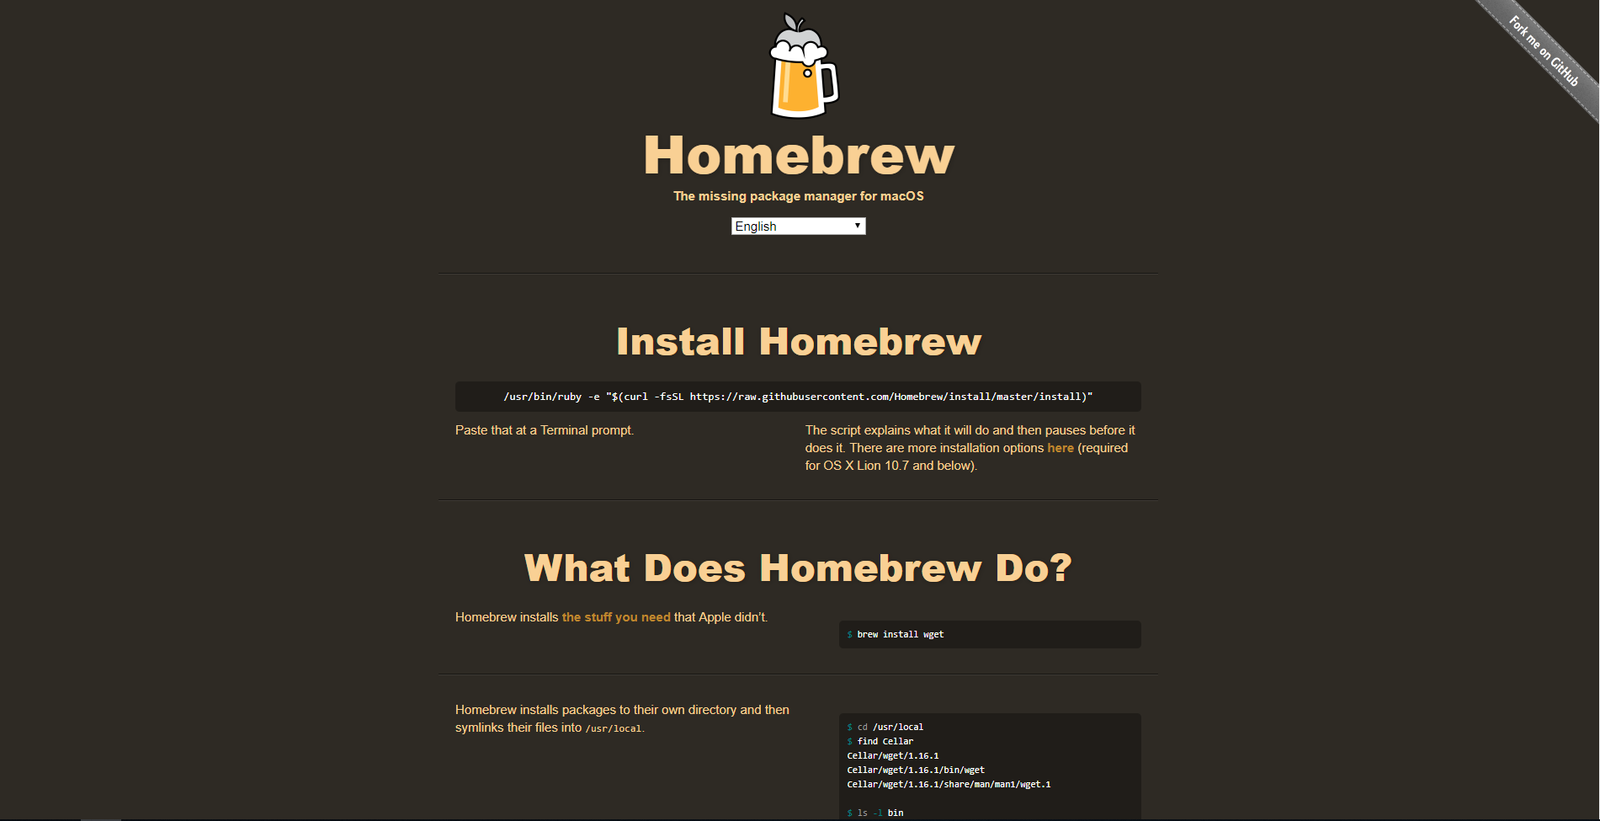 homebrew homepage screenshot